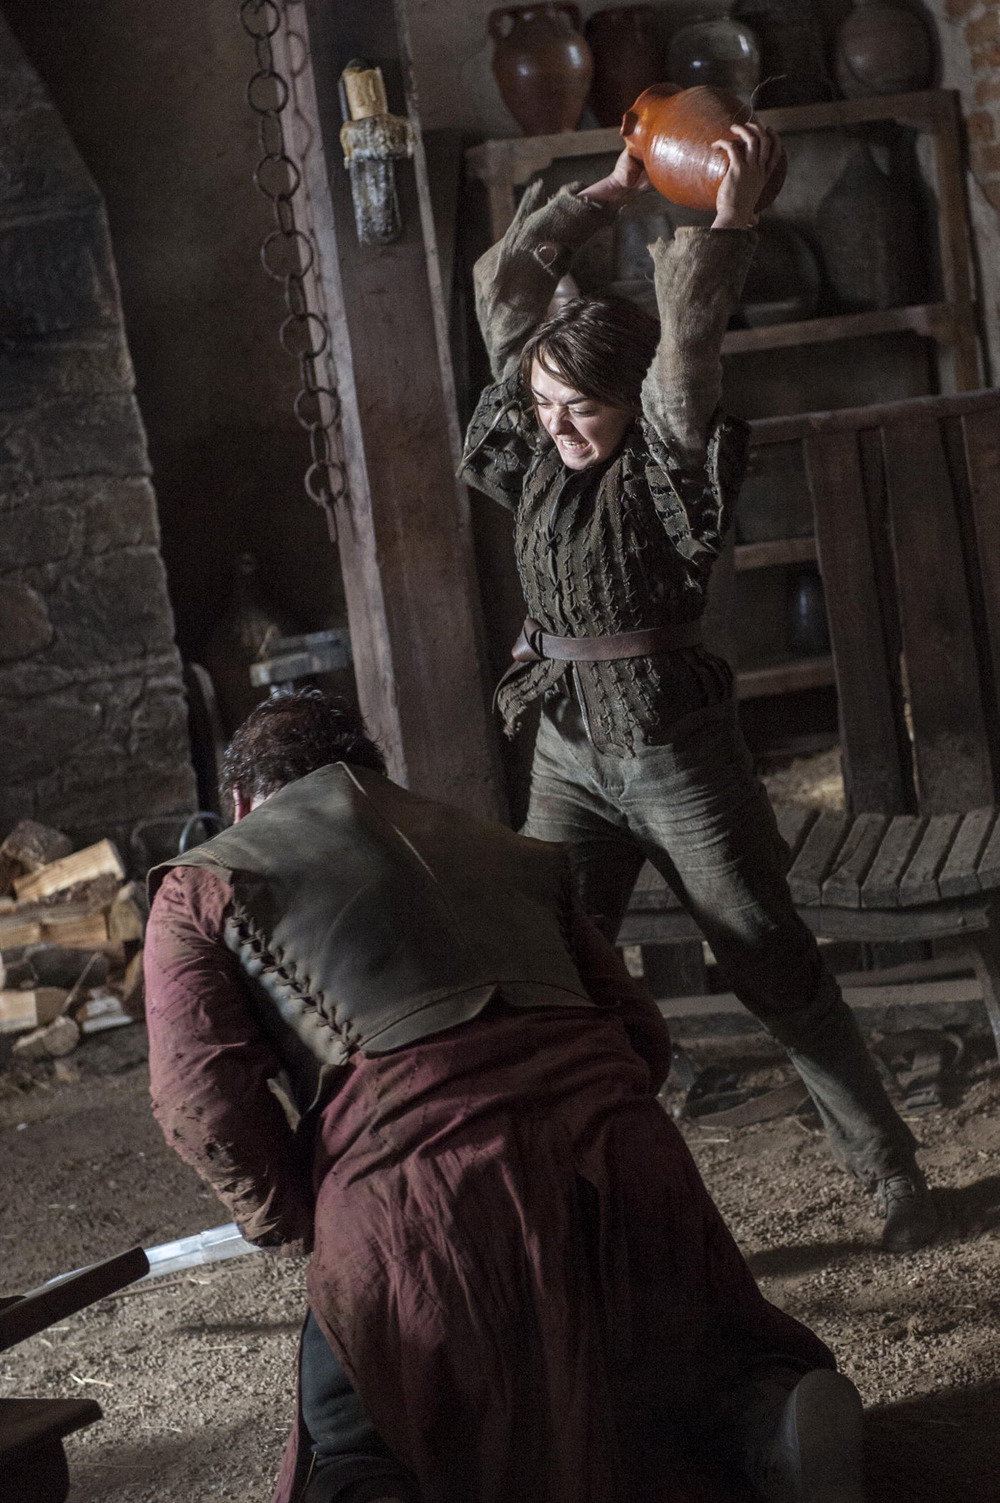 Game of Thrones Spoilers: Will Arya Kill Anyone Else on Her List?